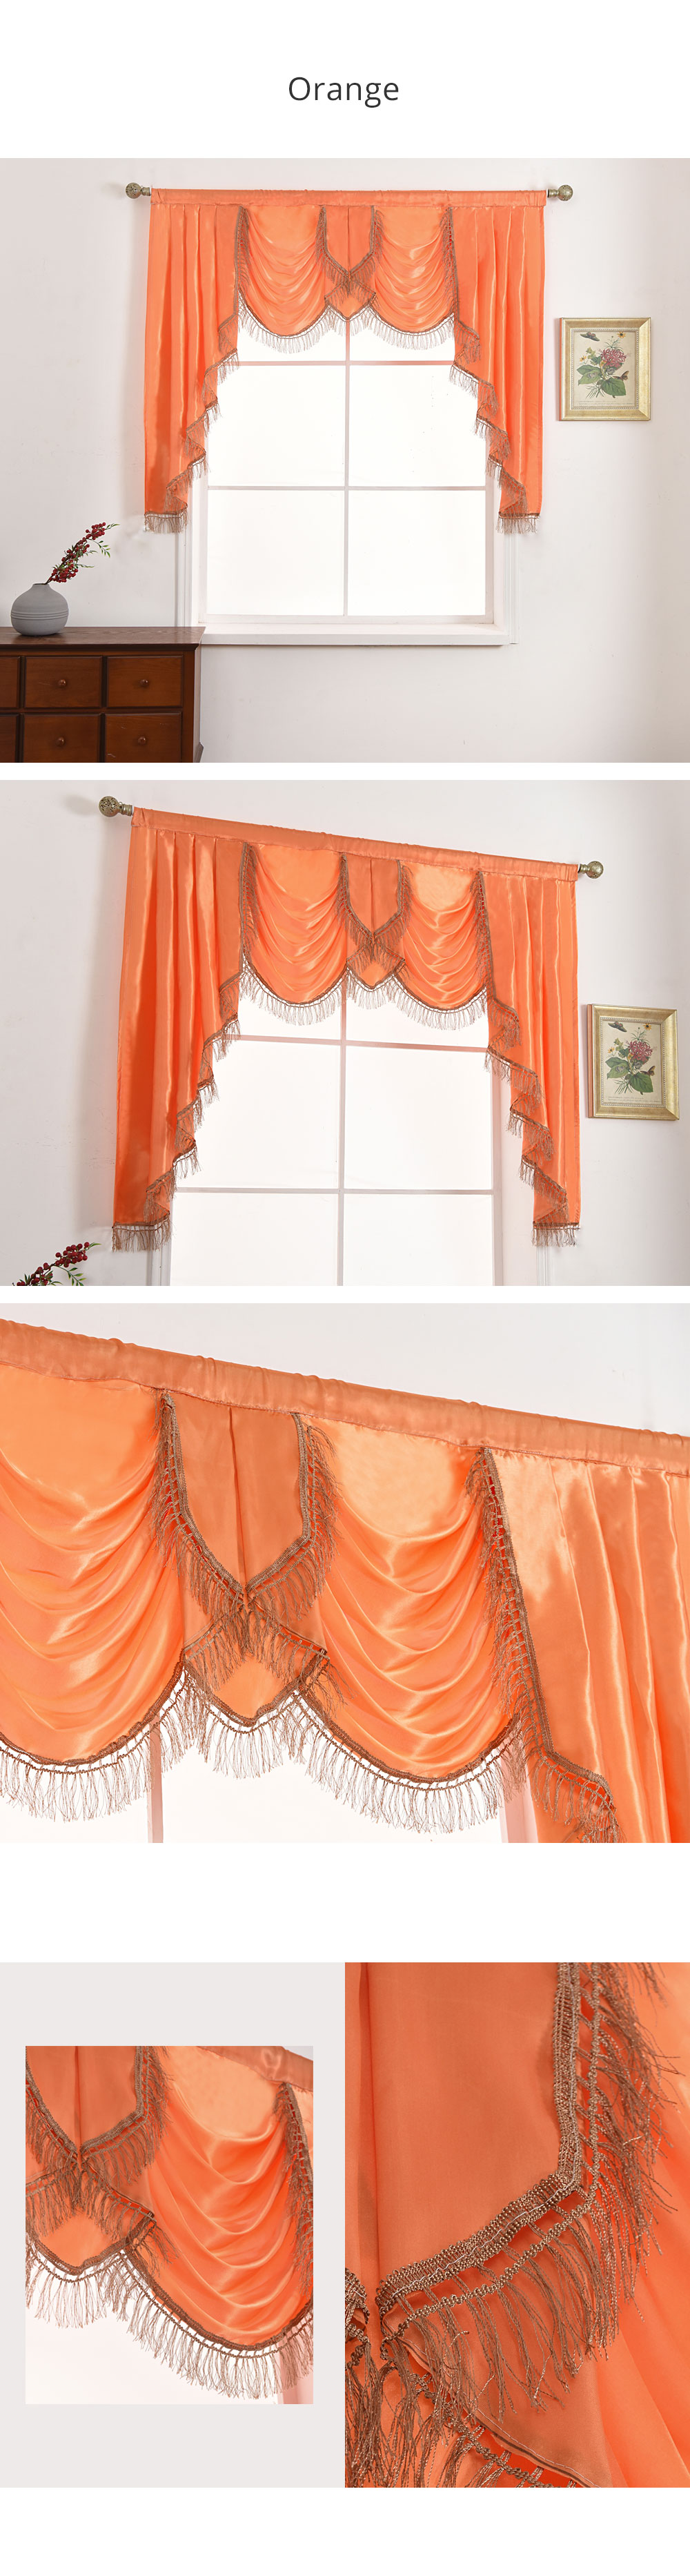 ZSBQ-BMD NAPEARL Luxury Valance Curtains Short Solid Color Drops For Bedroom European Style Semi Shade Fabric Elegant Panel Decor Rustic (2)